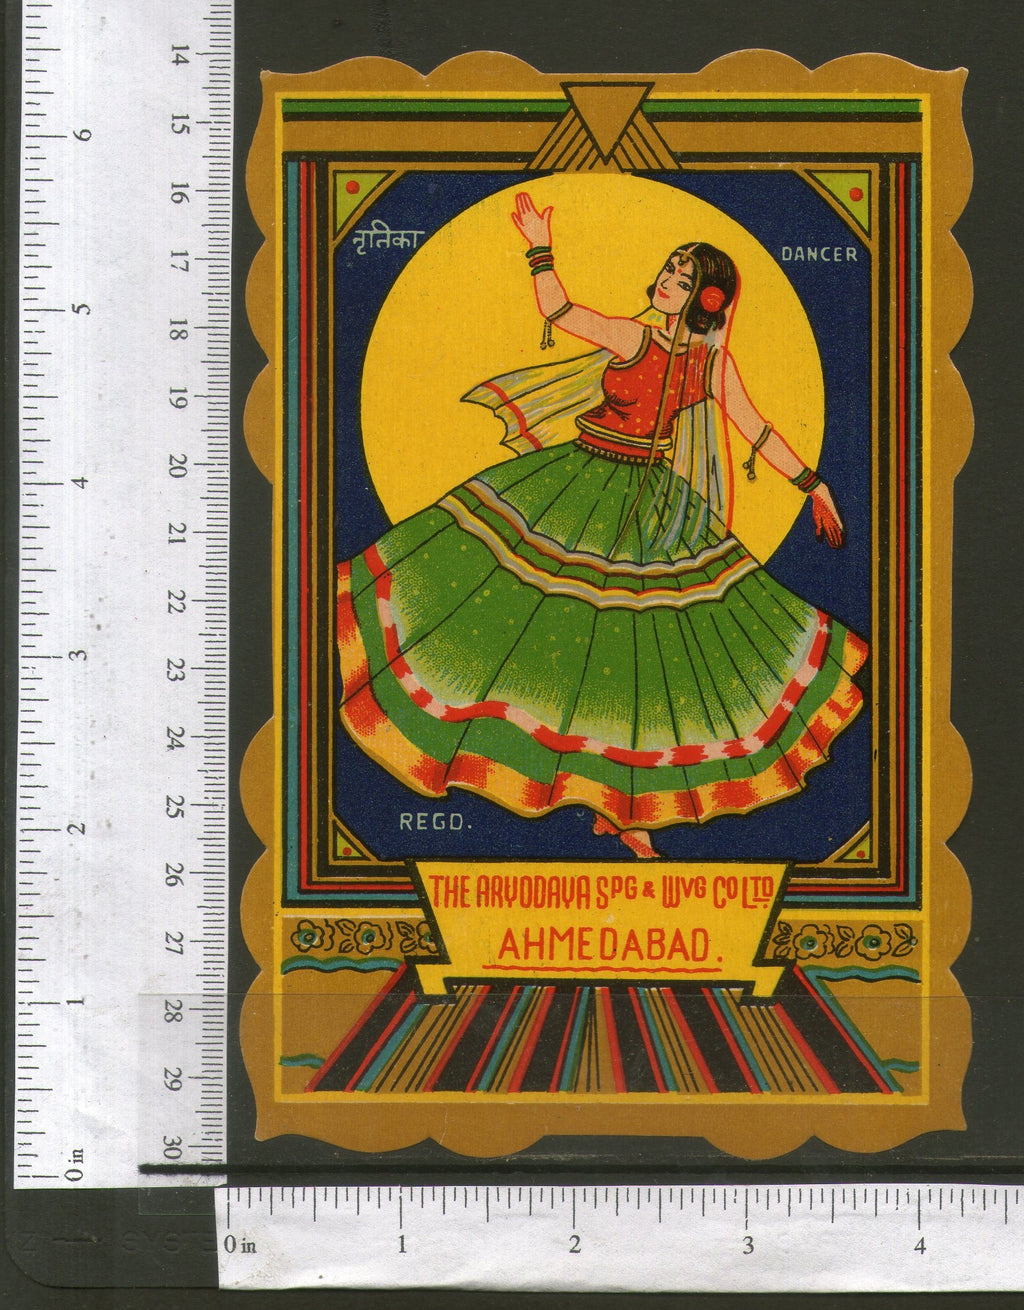 India Women Dancer Costume Vintage Trade Textile Label Multi-colour # 556-40 - Phil India Stamps